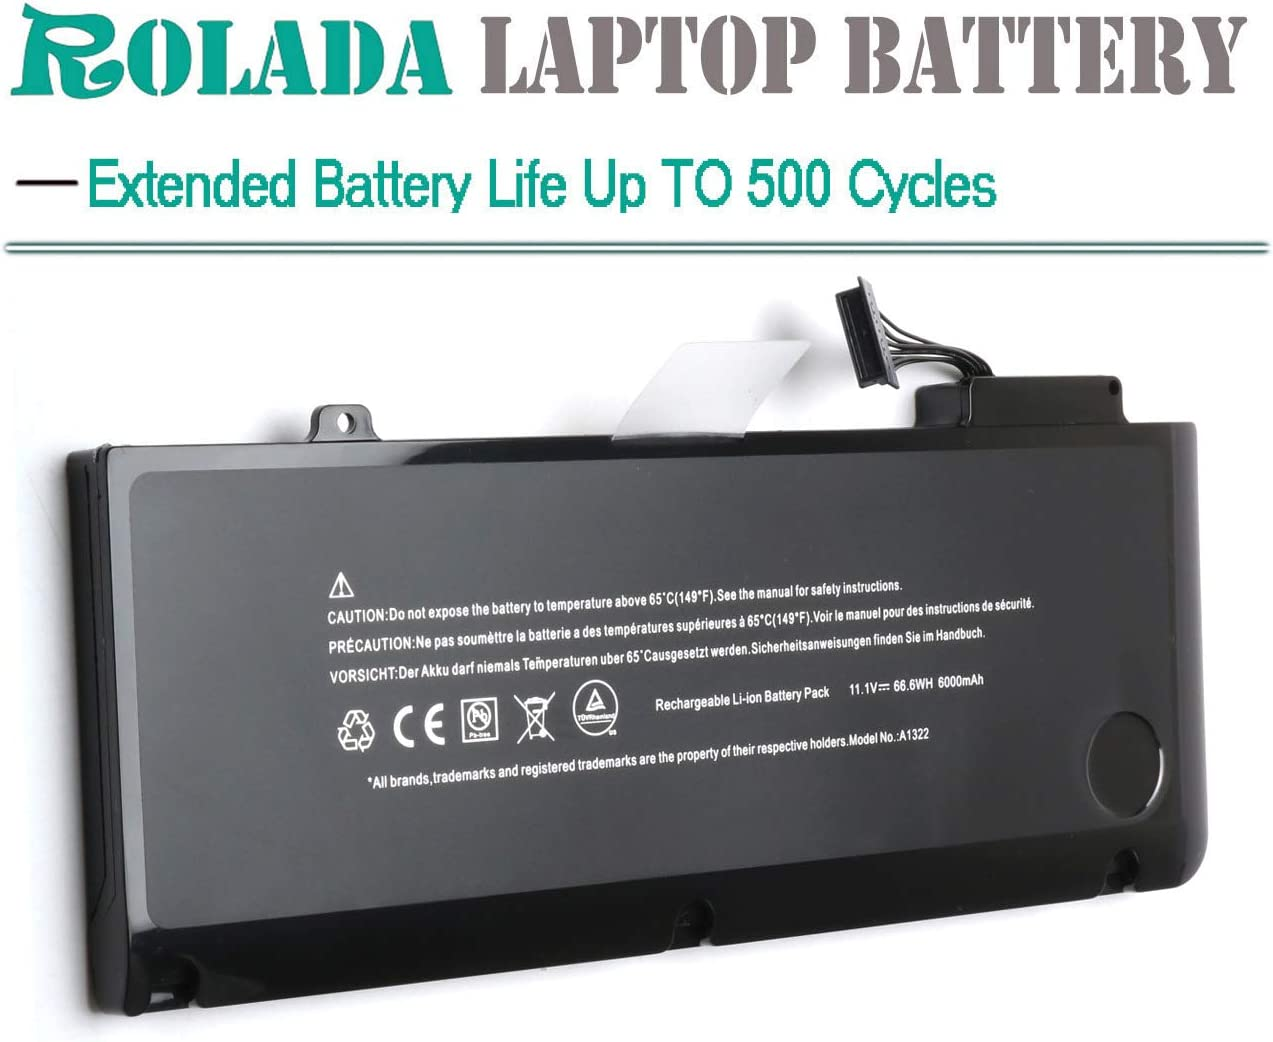 A1322 Laptop Battery for MacBook Pro 13 A1322 A1278 Mid 2009, Mid ...